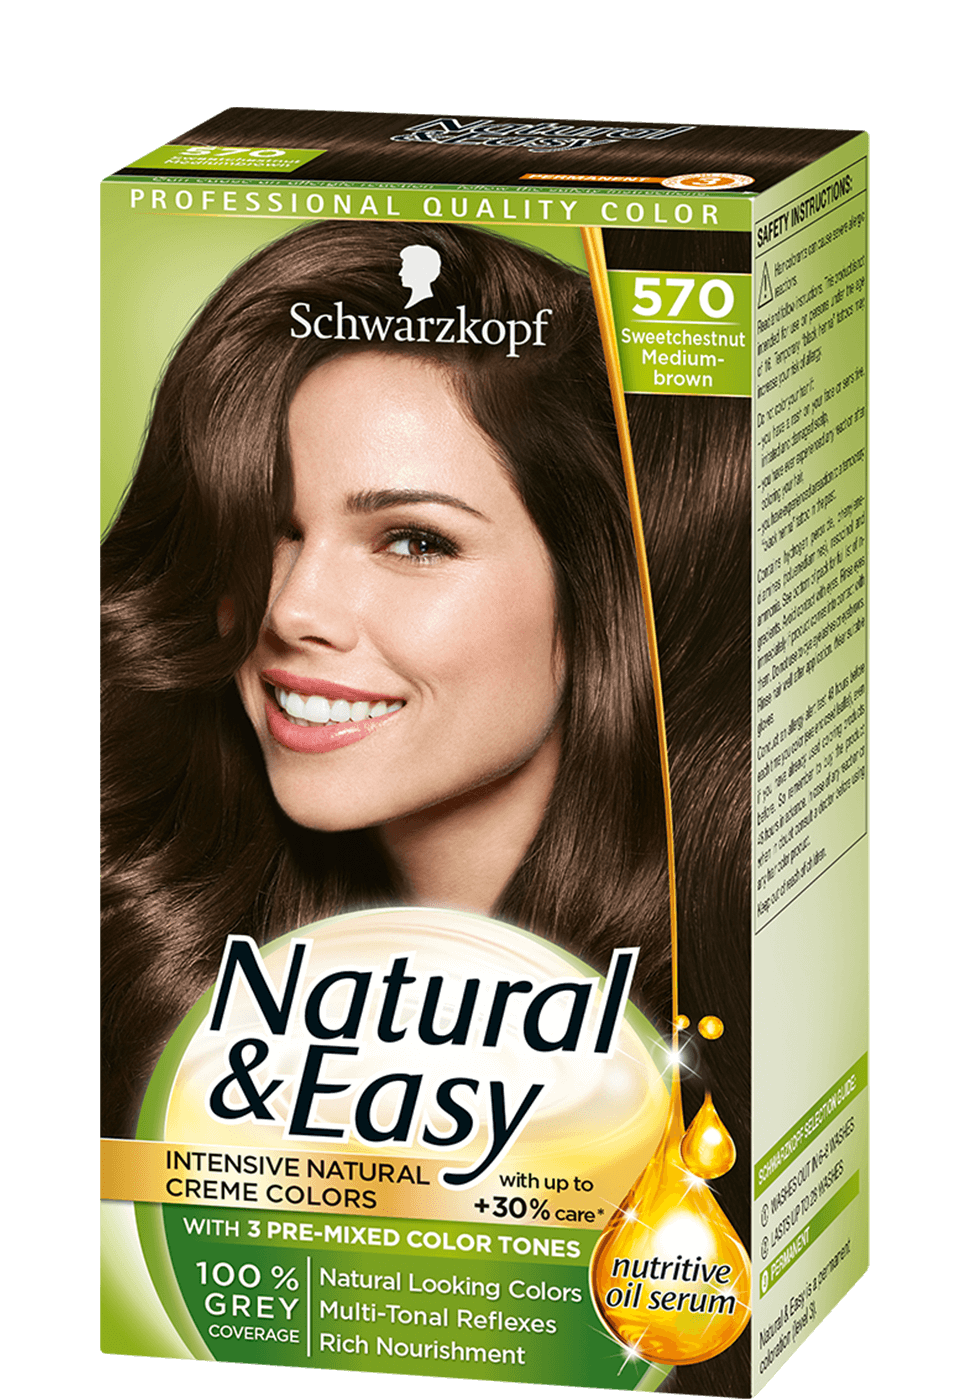 natural_easy_com_brown_hair_570_sweetchestnut_medium_brown_970x1400